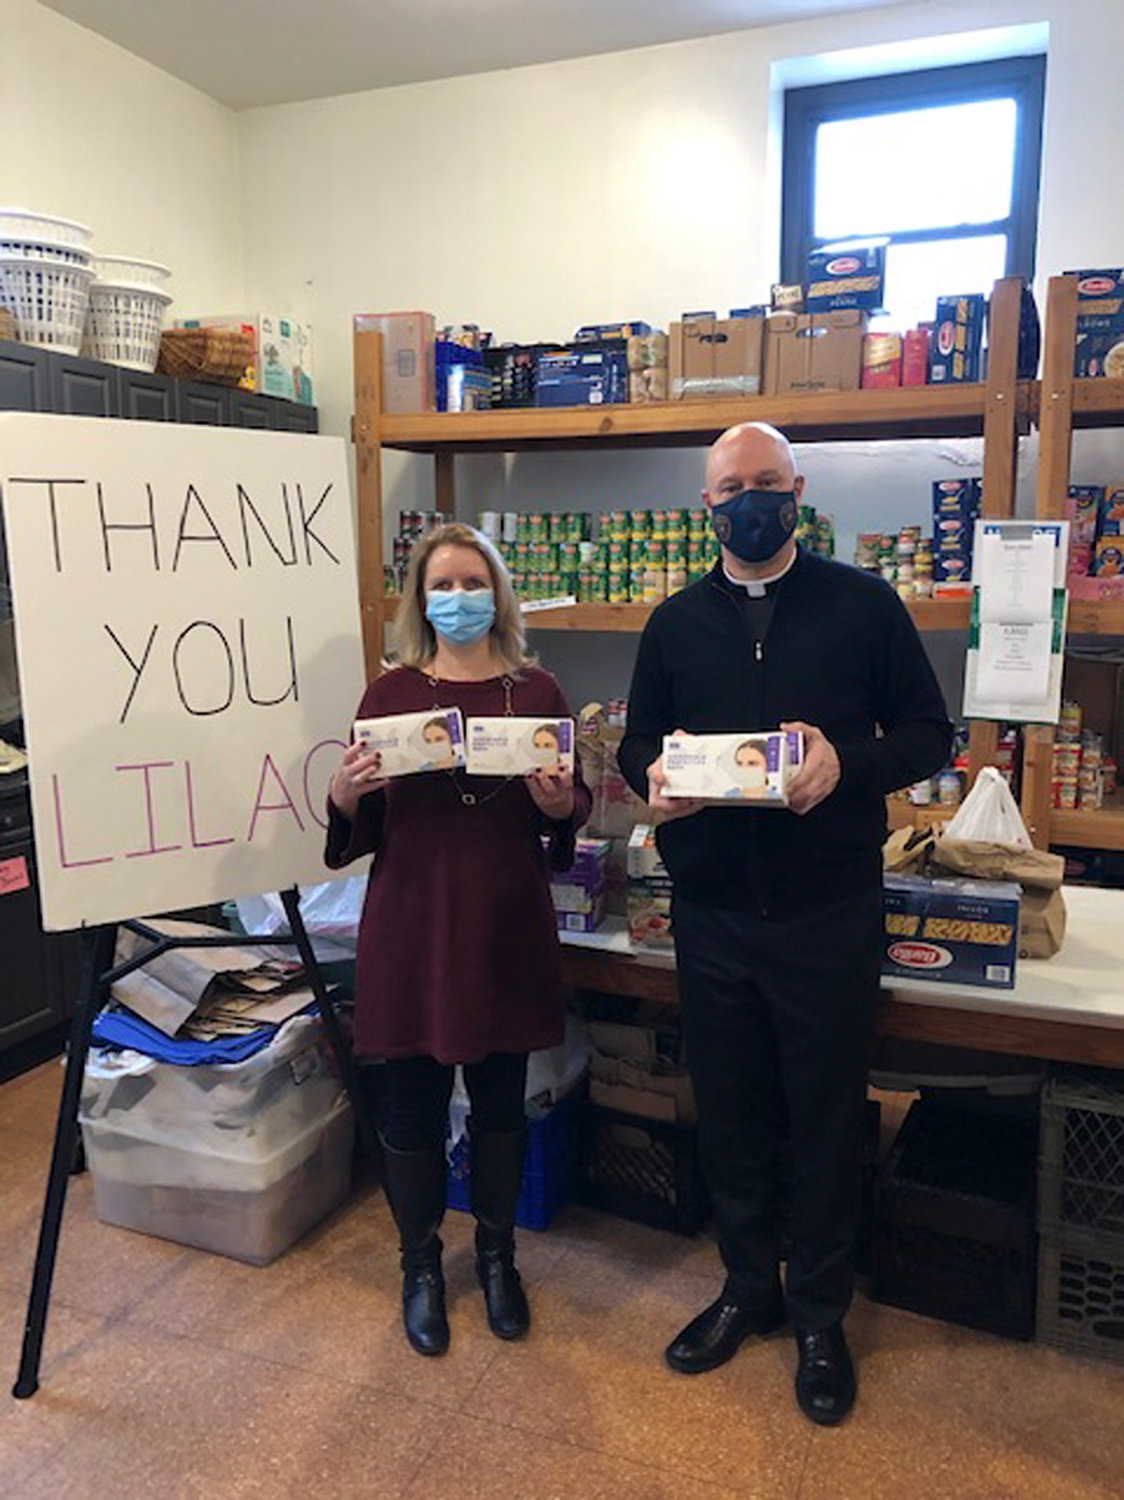 Nassau County Legislator Debra Mulé dropped off masks with the Rev. Nicholas Zientarski, of St. Christopher's Church in Baldwin, whose food pantry serves the food insecure.